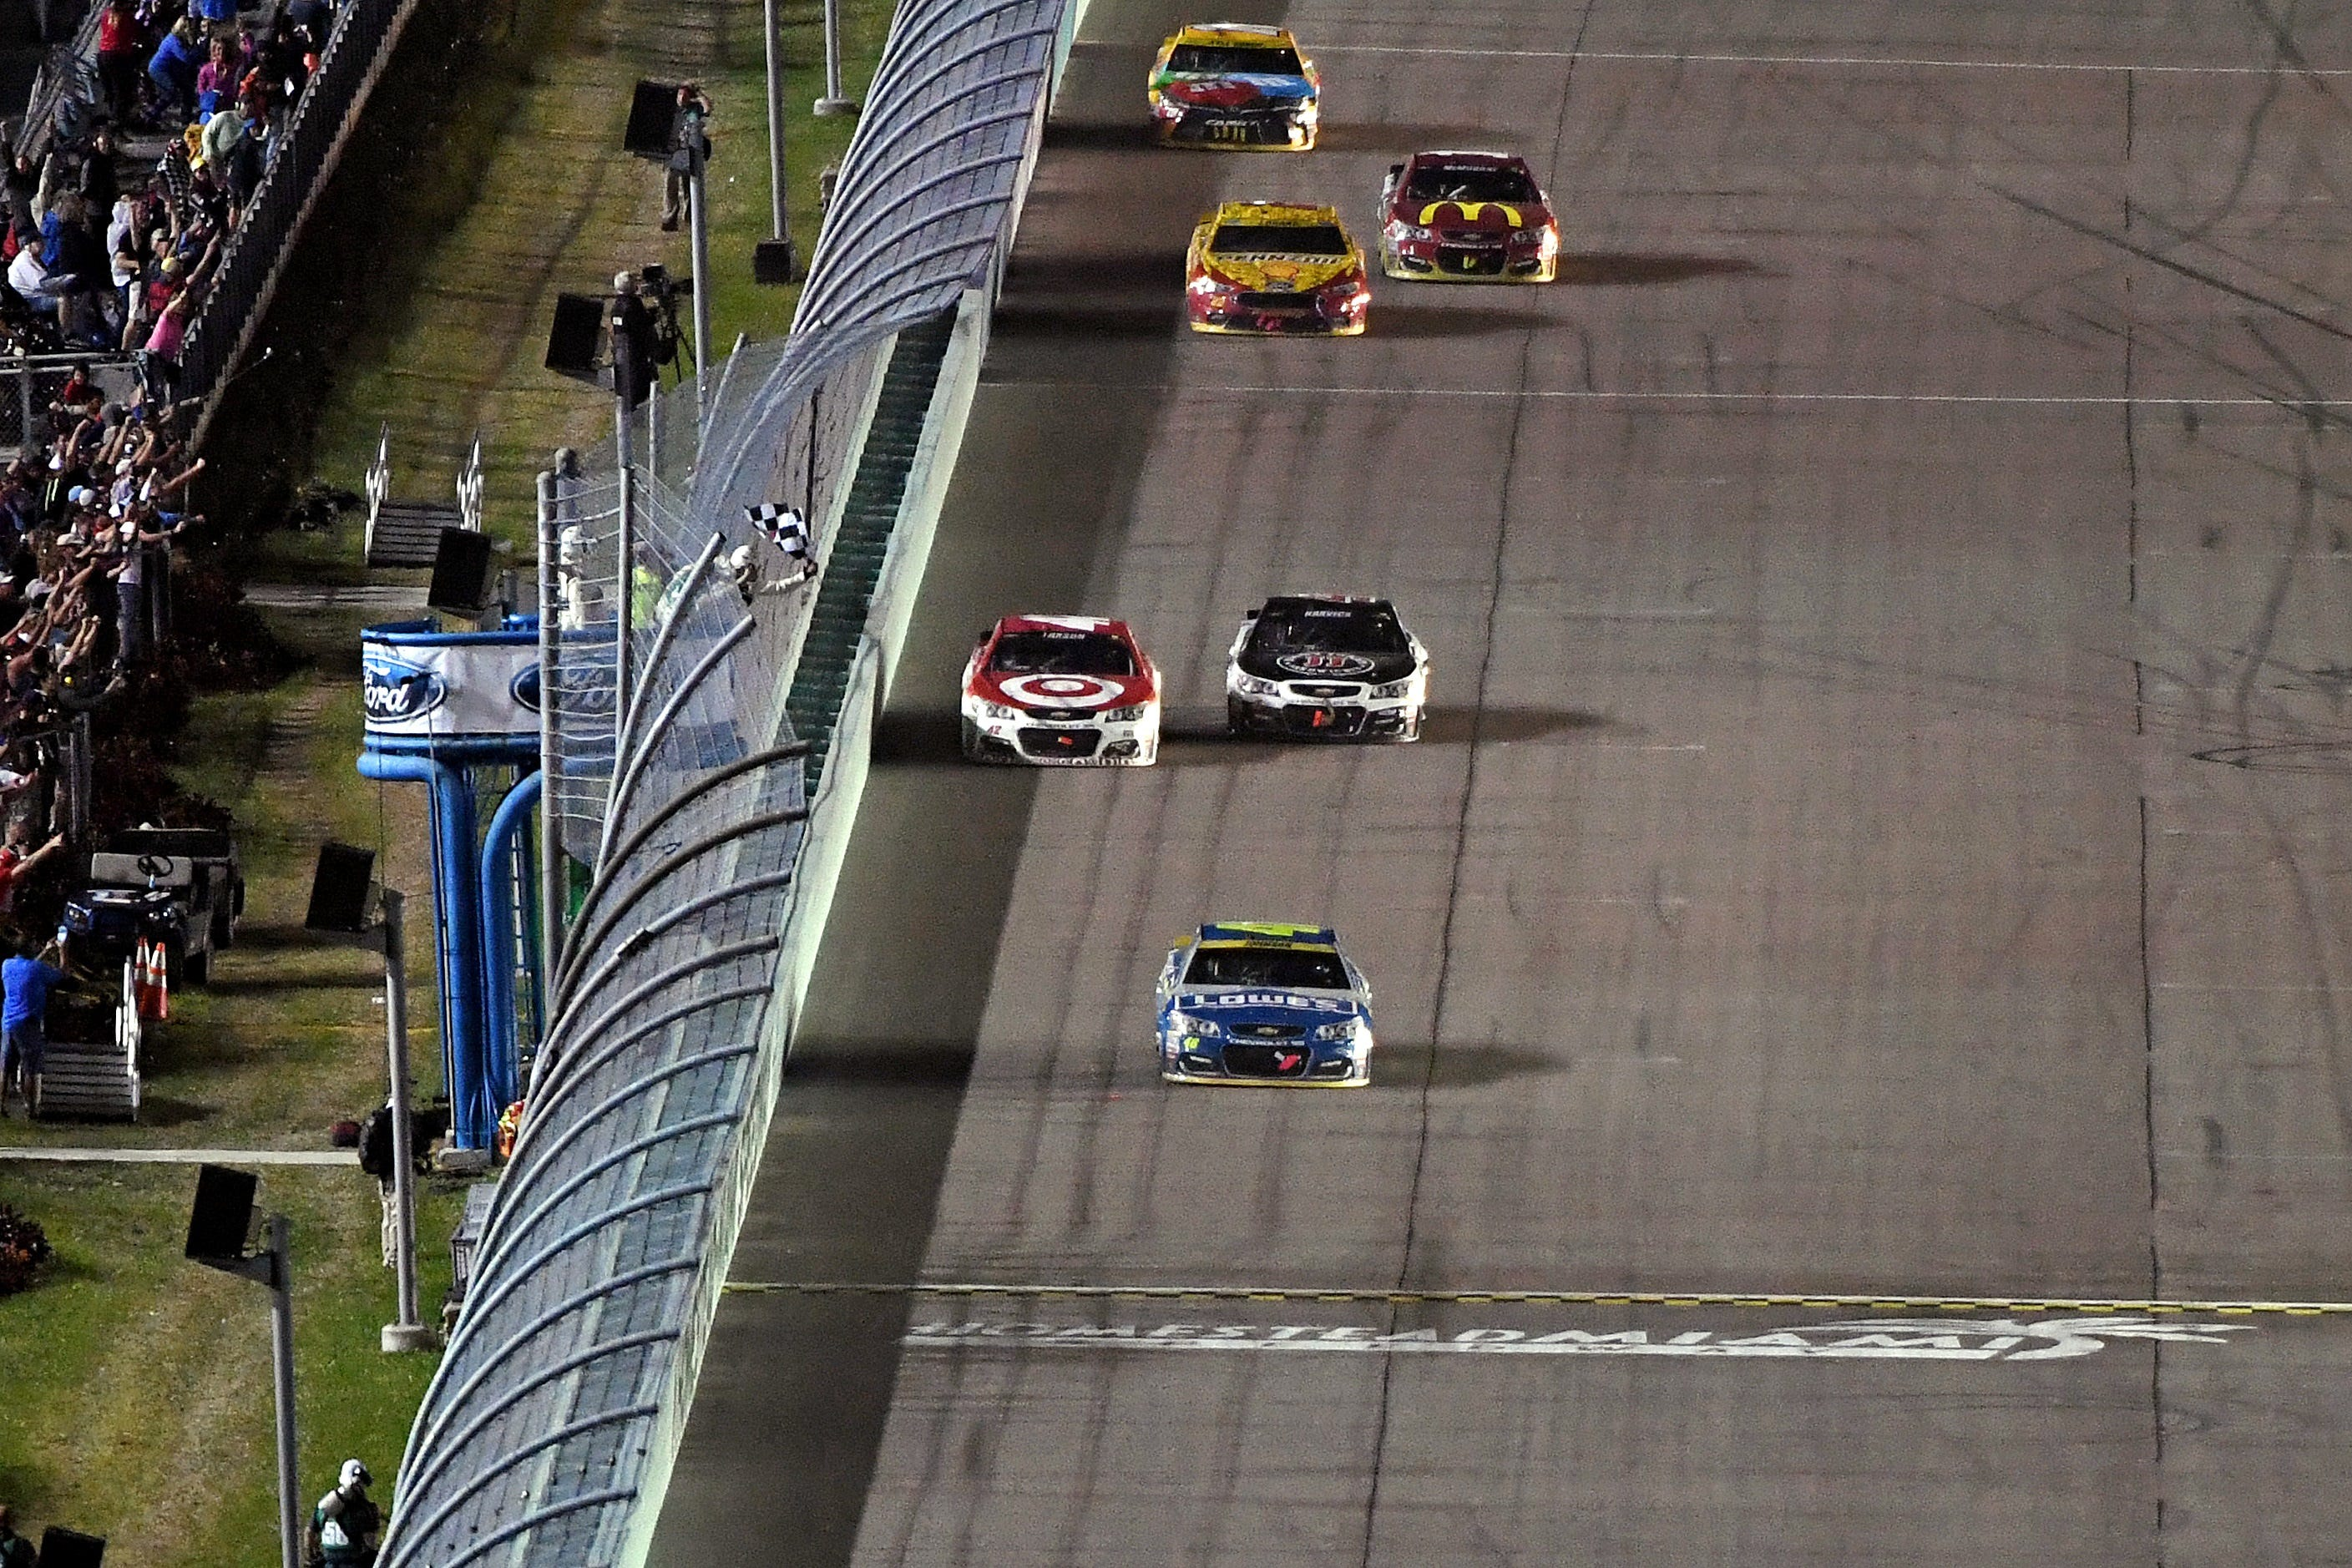 http://www usatoday com/picture-gallery/sports/nascar/2017